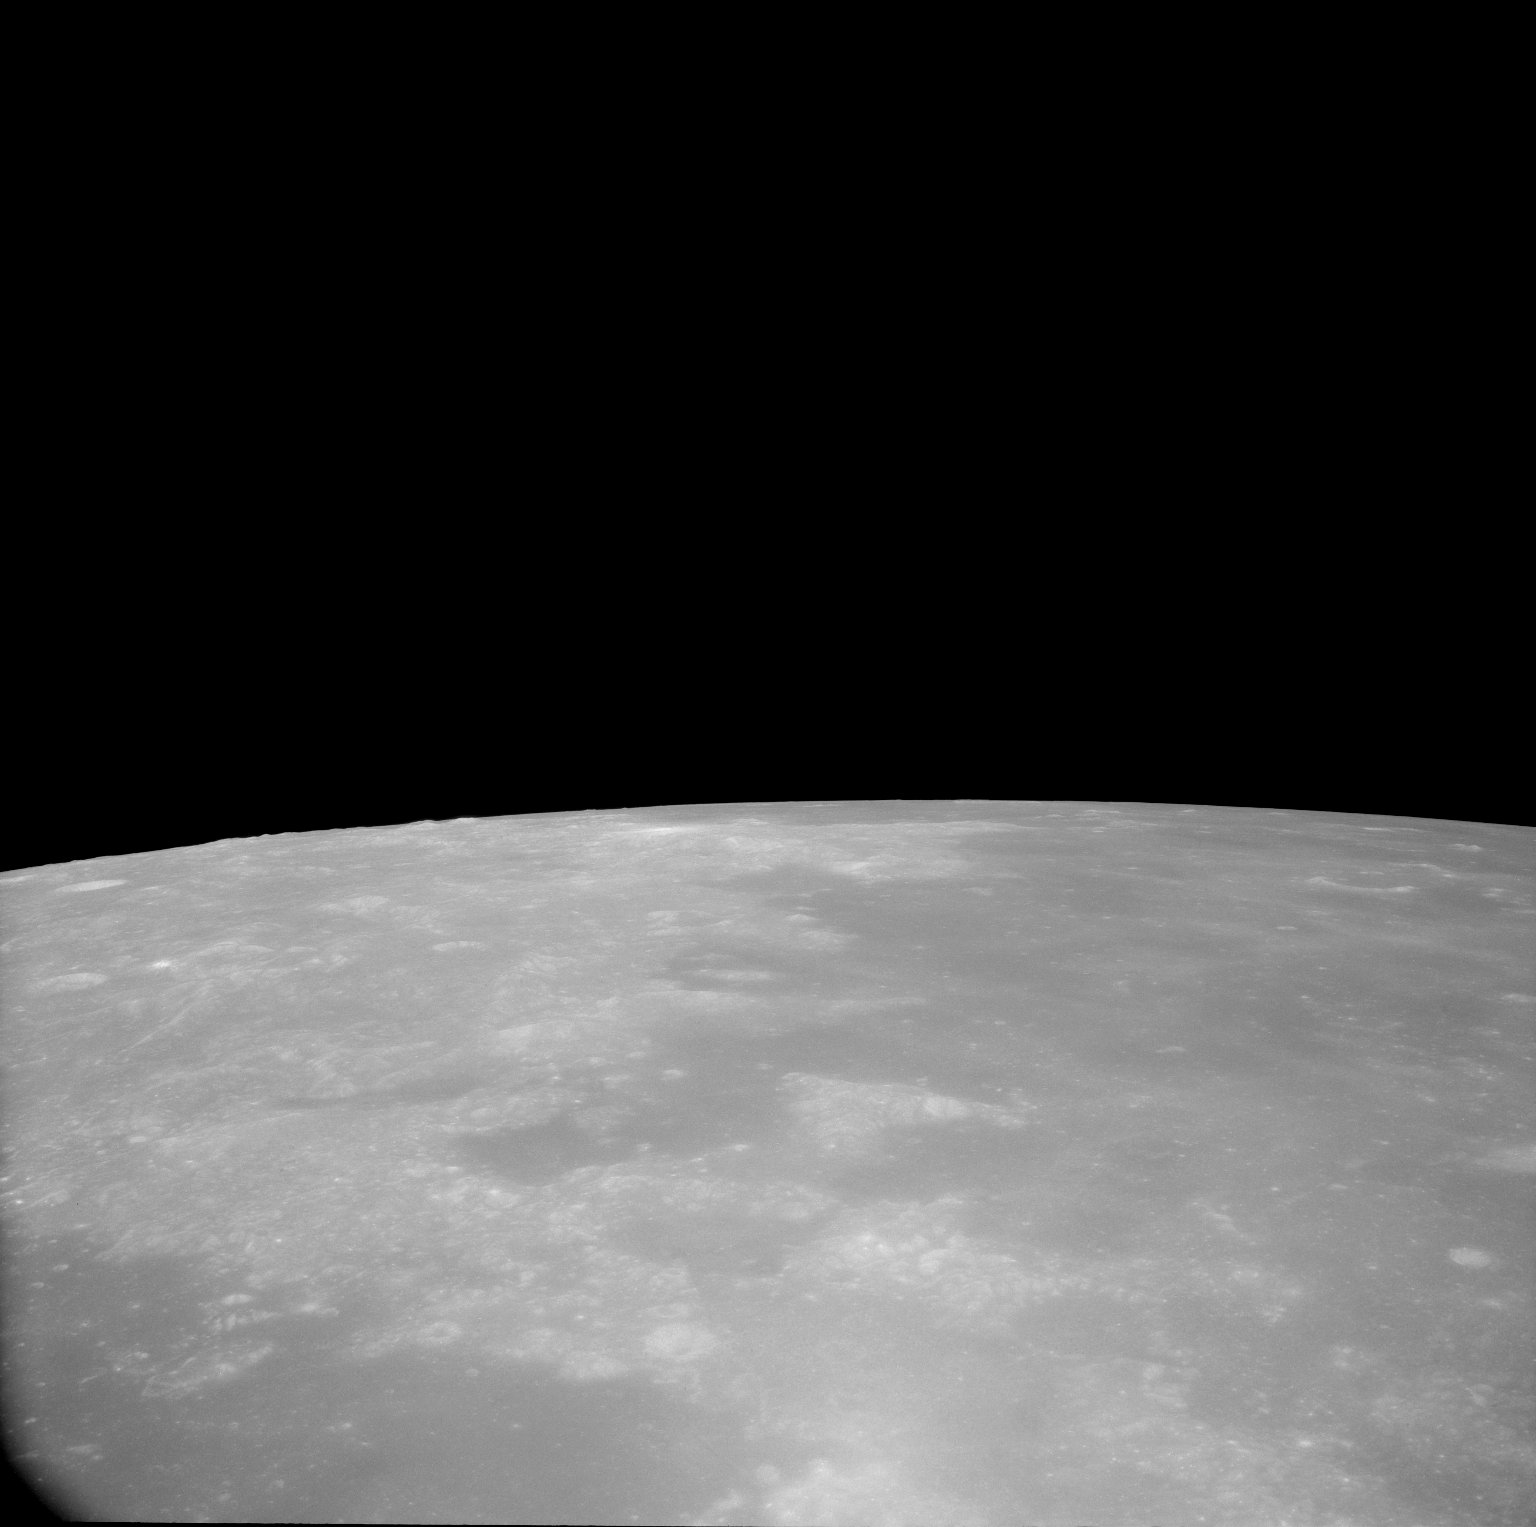 Apollo 11 Mission image - TO 80 and 84